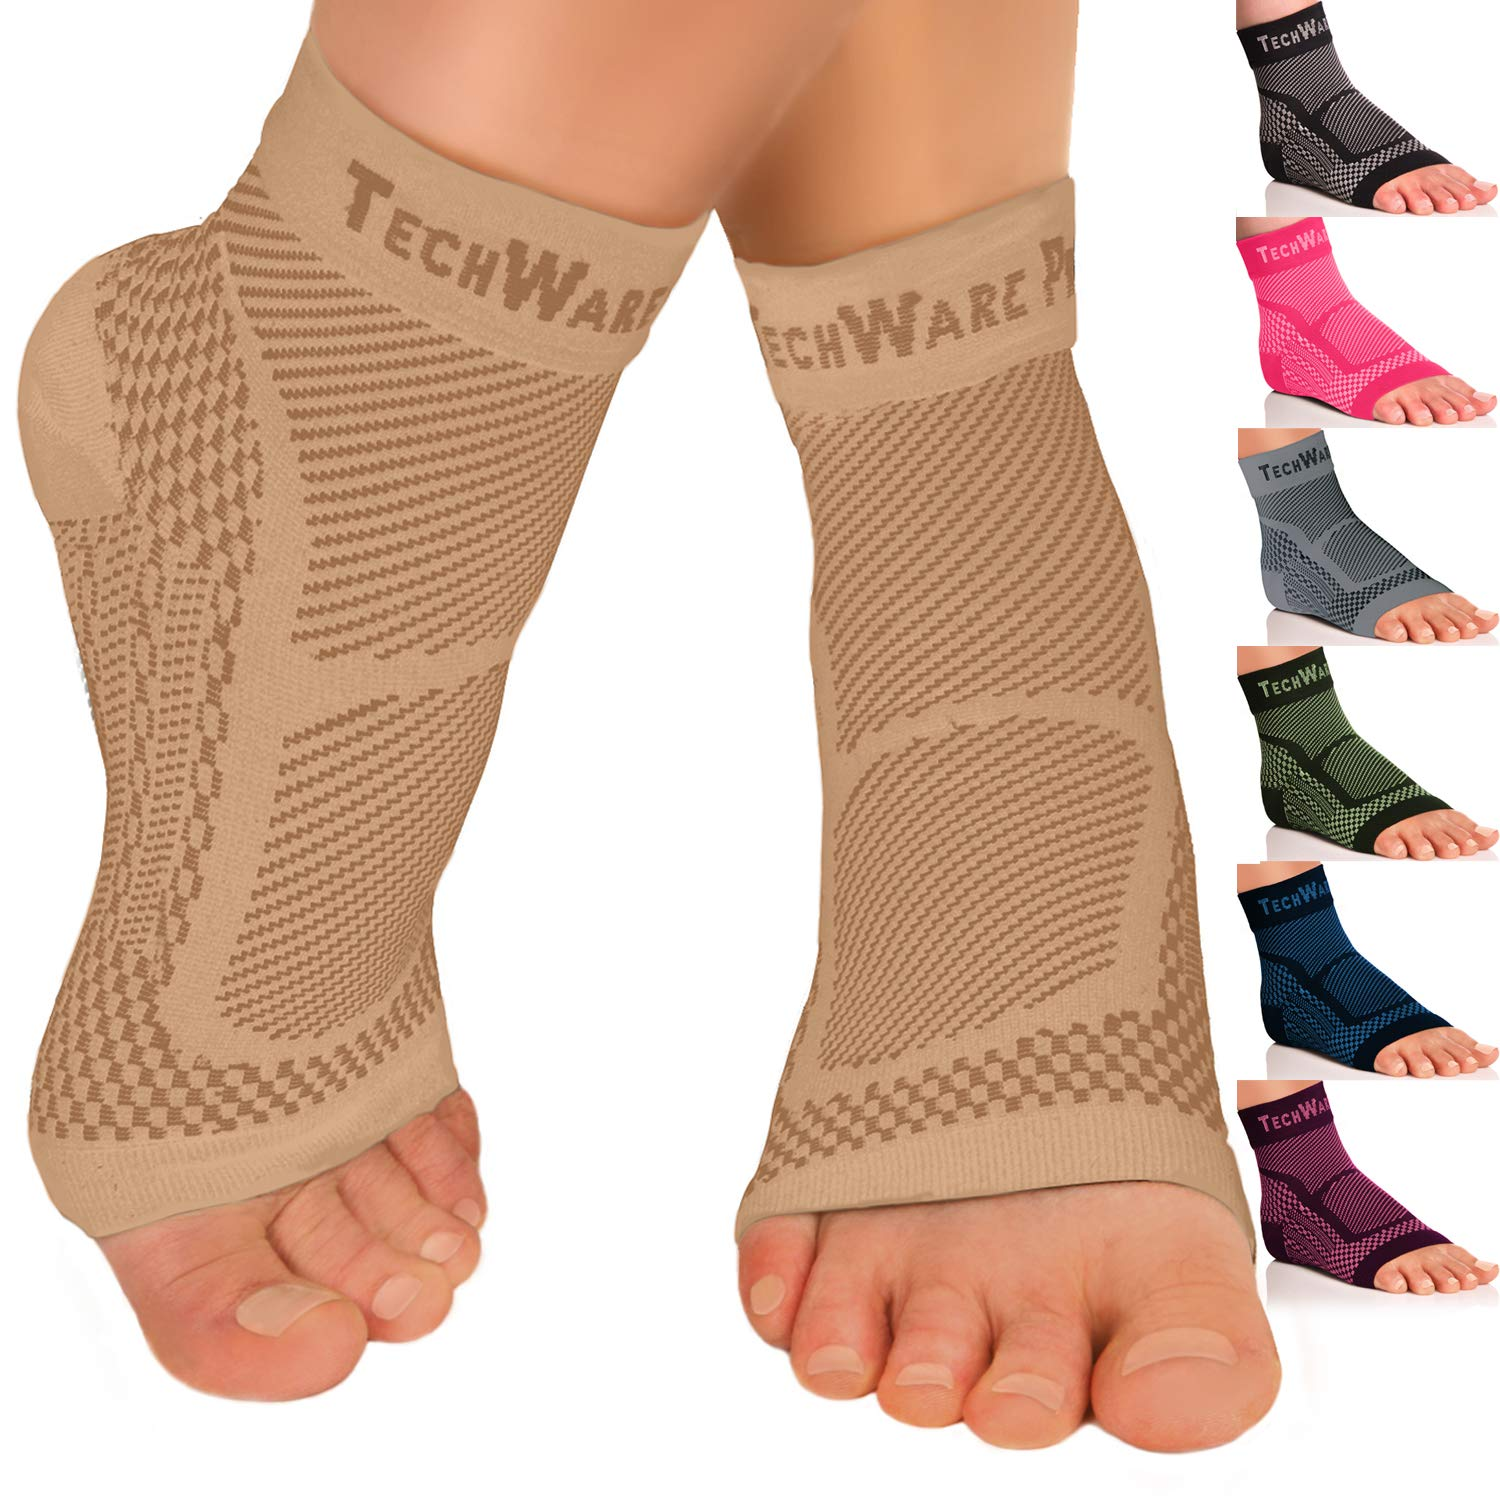 7a3bff86d8 TechWare Pro Ankle Brace Compression Sleeve – Relieves Achilles Tendonitis,  Joint Pain. Plantar Fasciitis Foot Sock Arch Support Reduces Swelling & Heel  ...